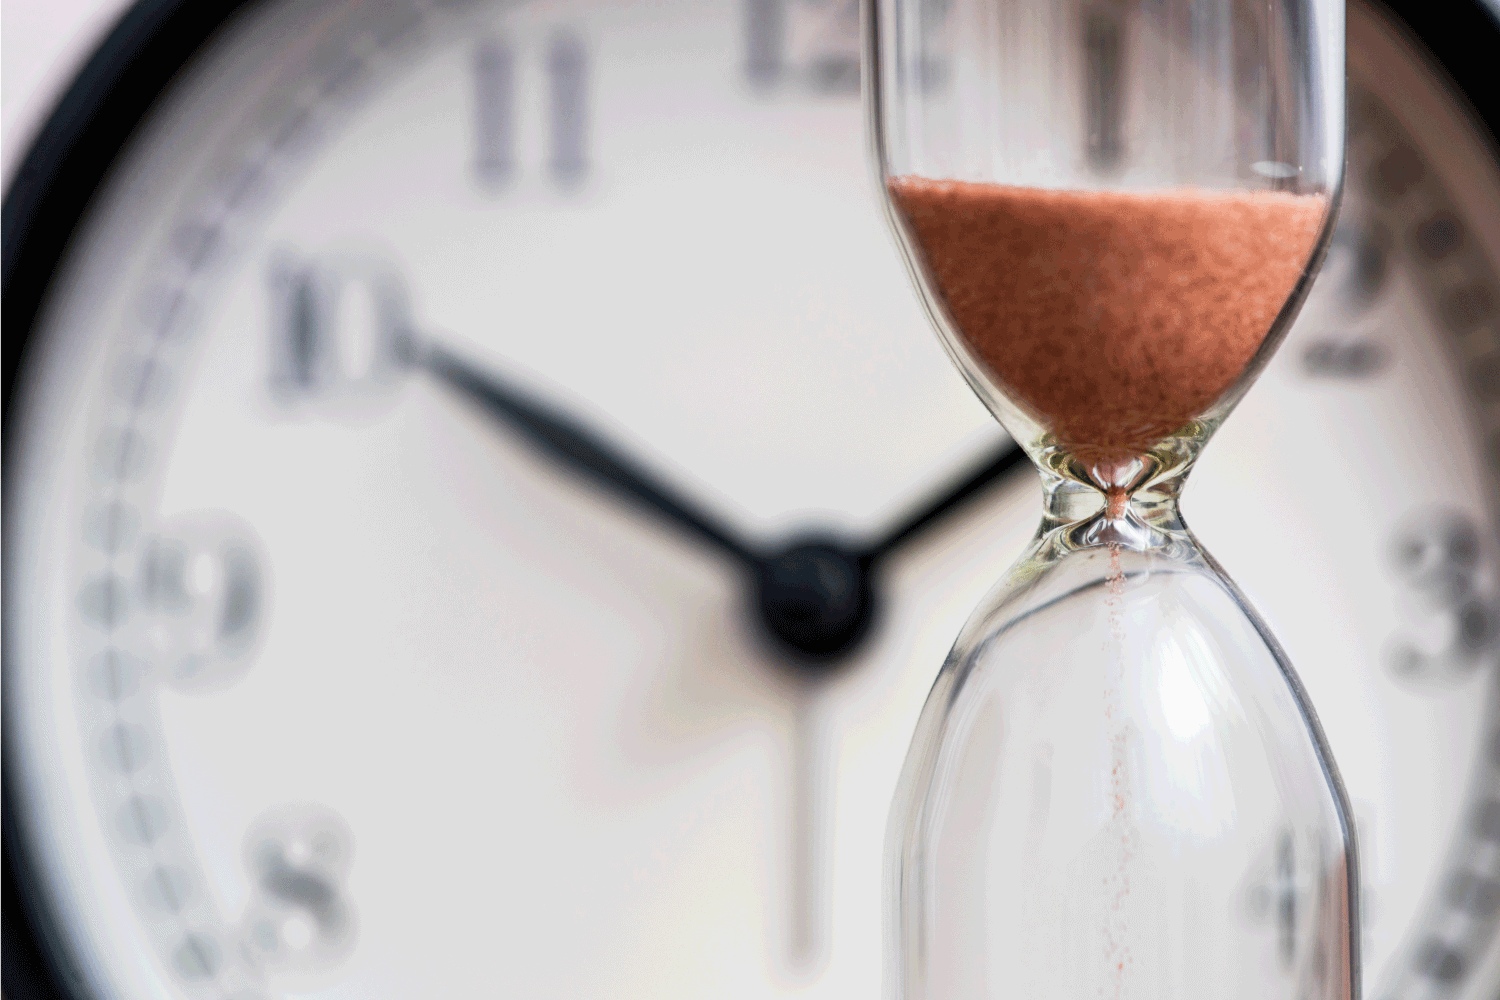 Hourglass on the background of office watch as time passing concept for business deadline, urgency and running out of time. Ninja Foodi Won't Turn On - What To Do